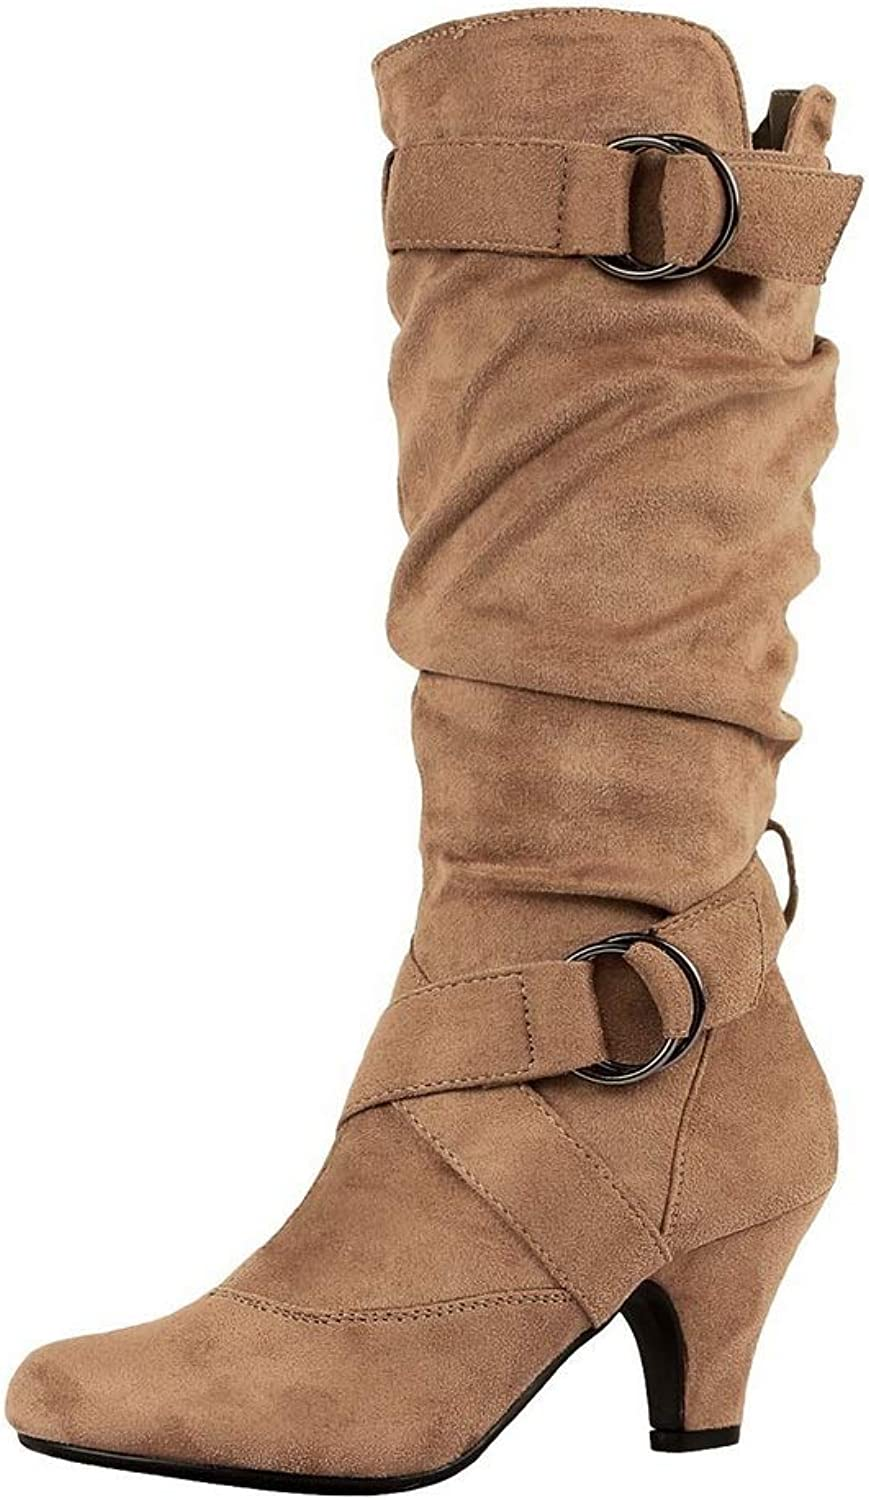 AdeeSu Womens Ruched Solid Buckle Urethane Boots SXC02827